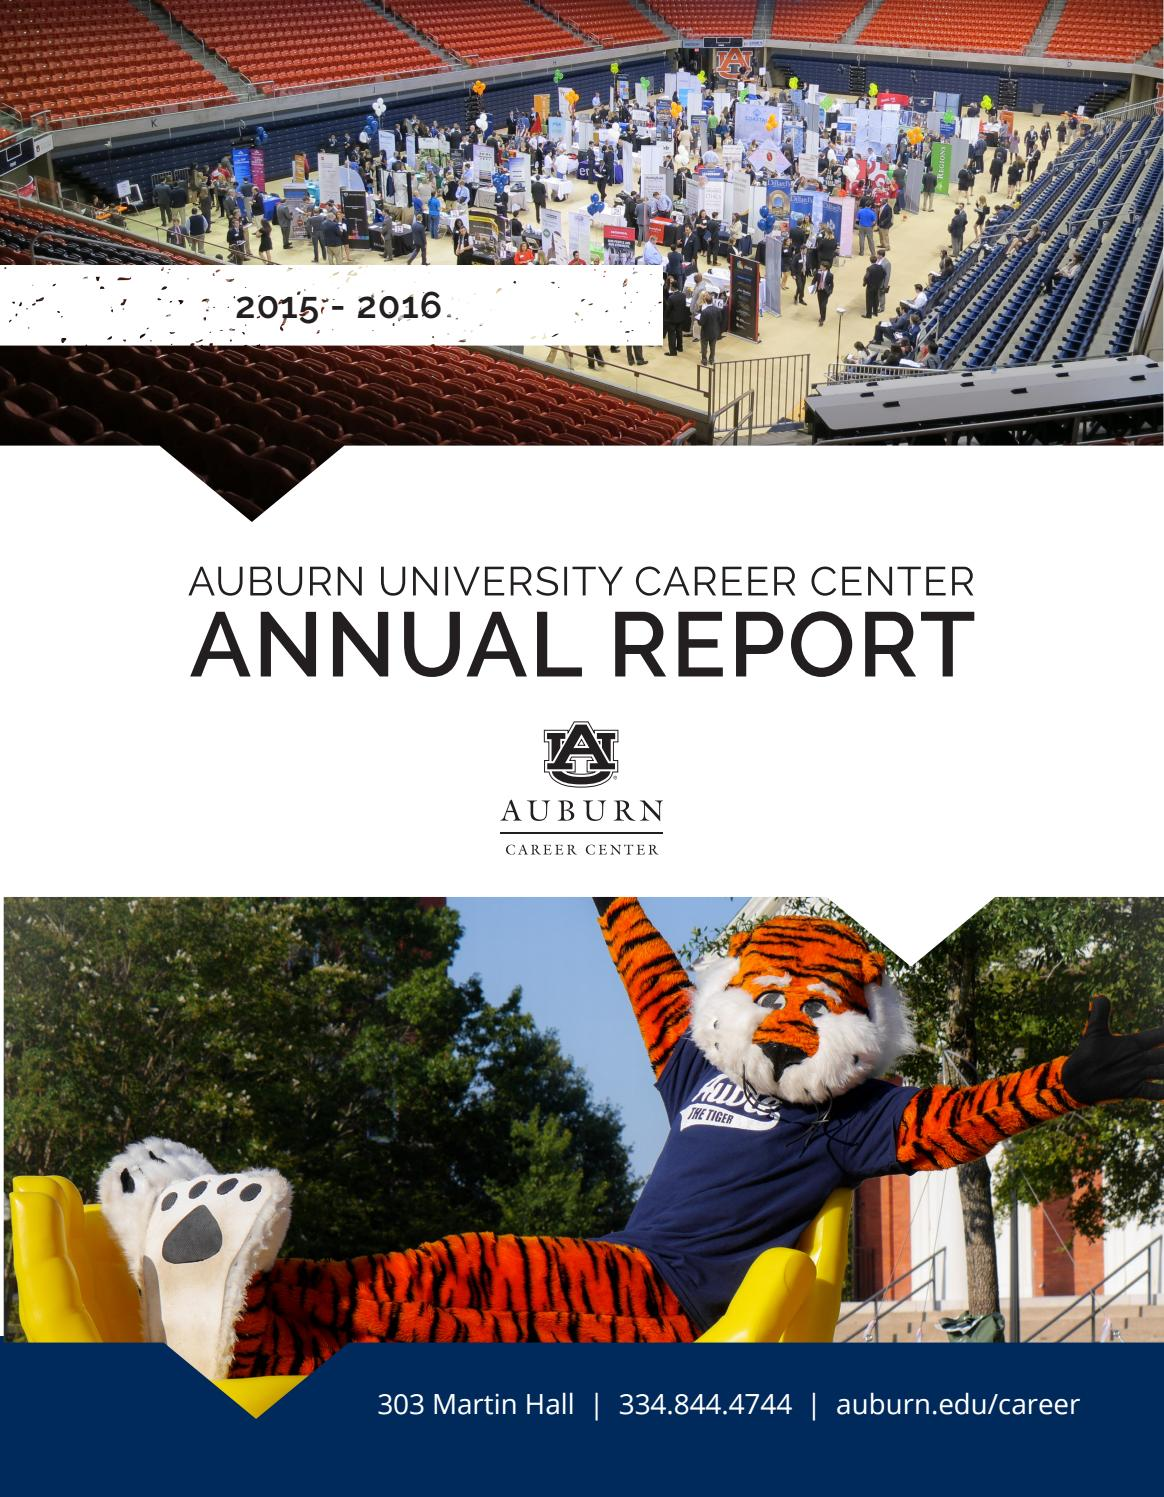 Auburn University Career Center Annual Report (2015-2016)